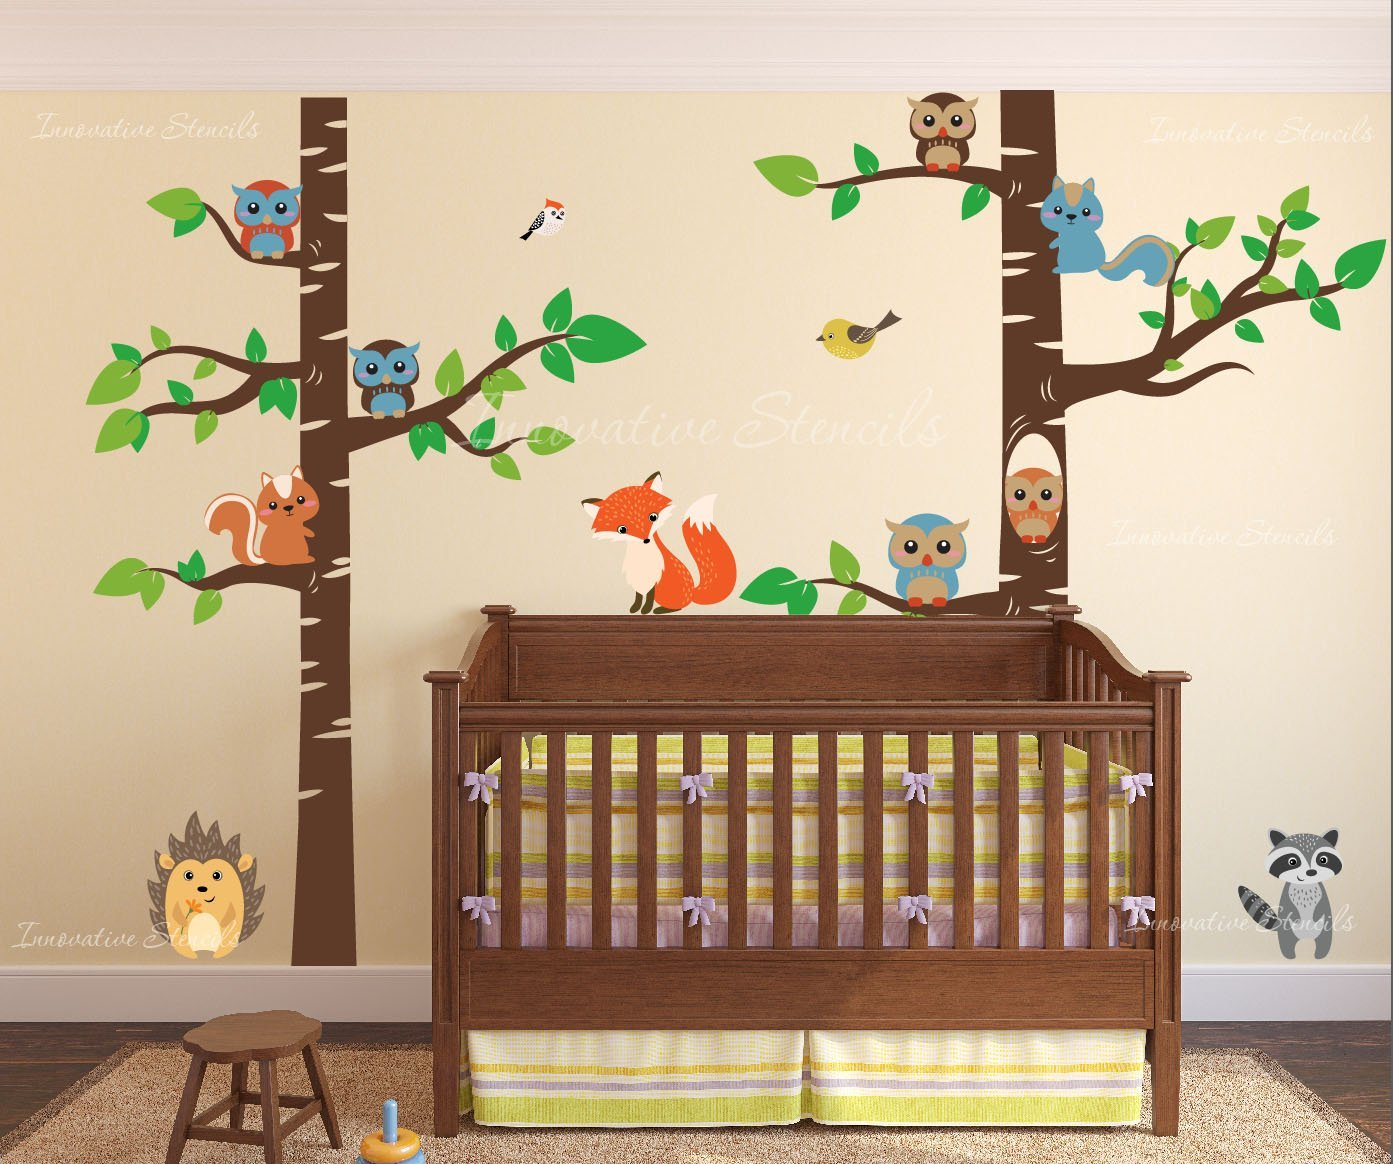 Birch Tree Wall Decal Forest with Owl Birds Squirrels Fox Porcupine Racoon Vinyl Sticker Woodland Children Decor Removable #1327 (96'' (8ft) Tall, Brown Trees) by Innovative Stencils